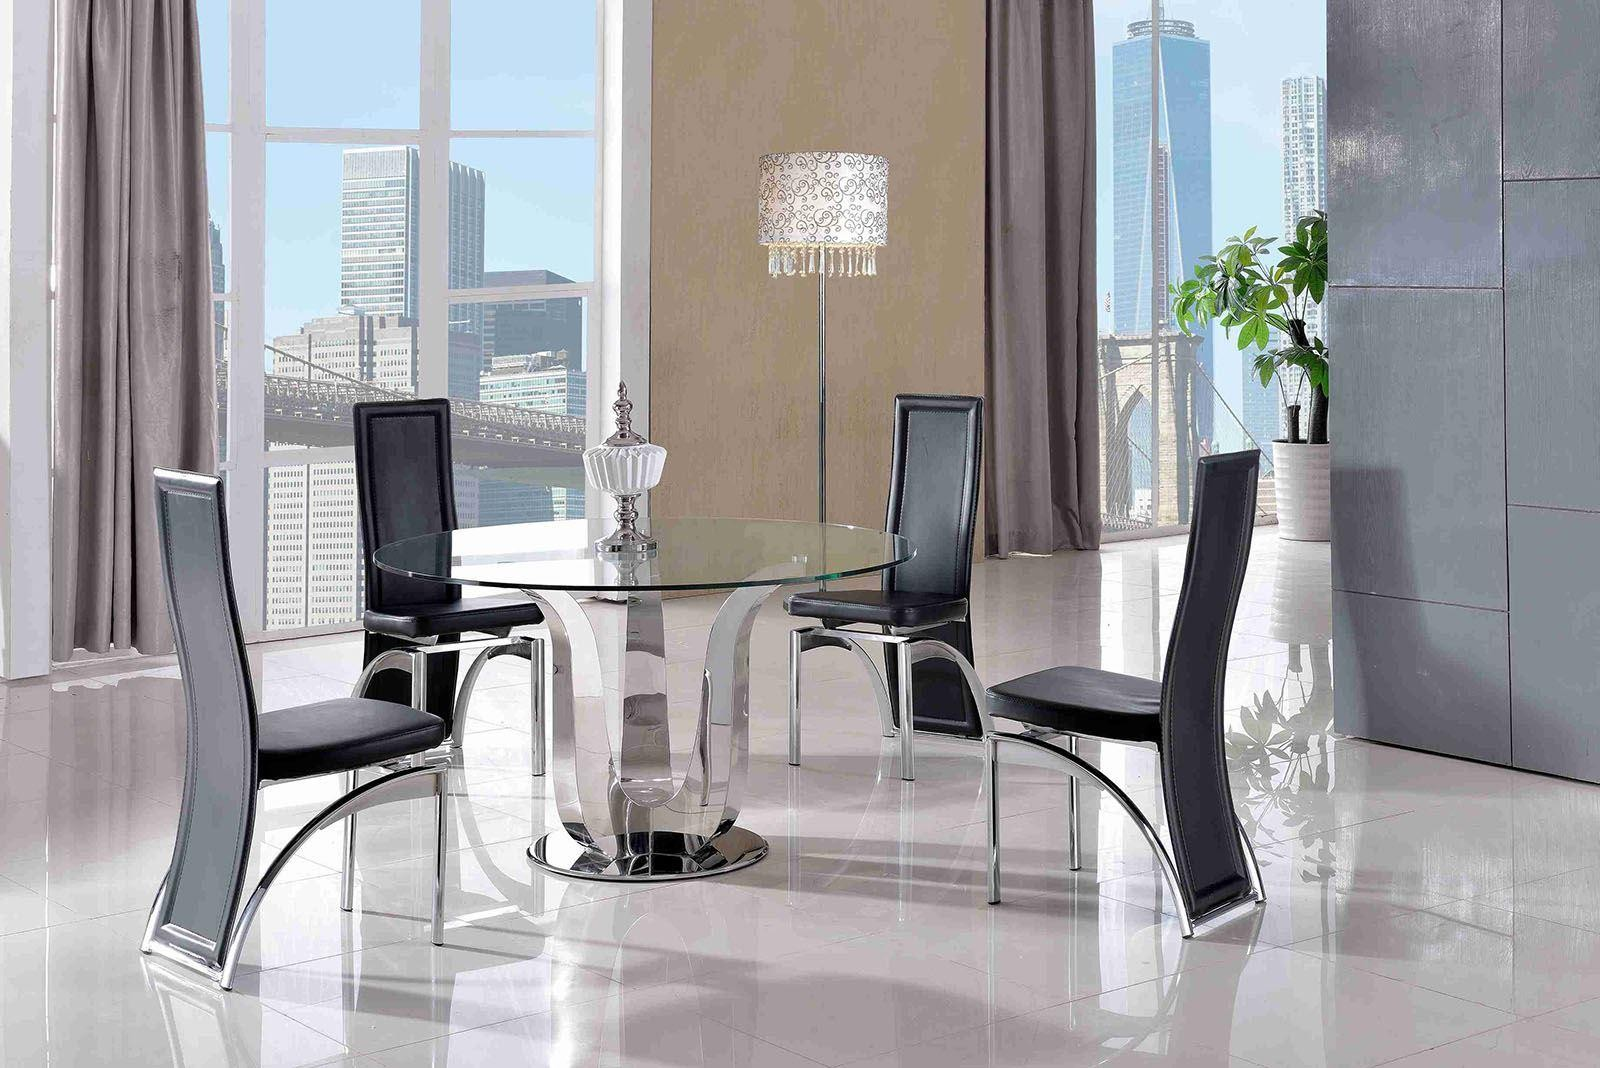 Naples Glass and Polished Steel Dining Table with 4 Alisa Dining Chair [Black]